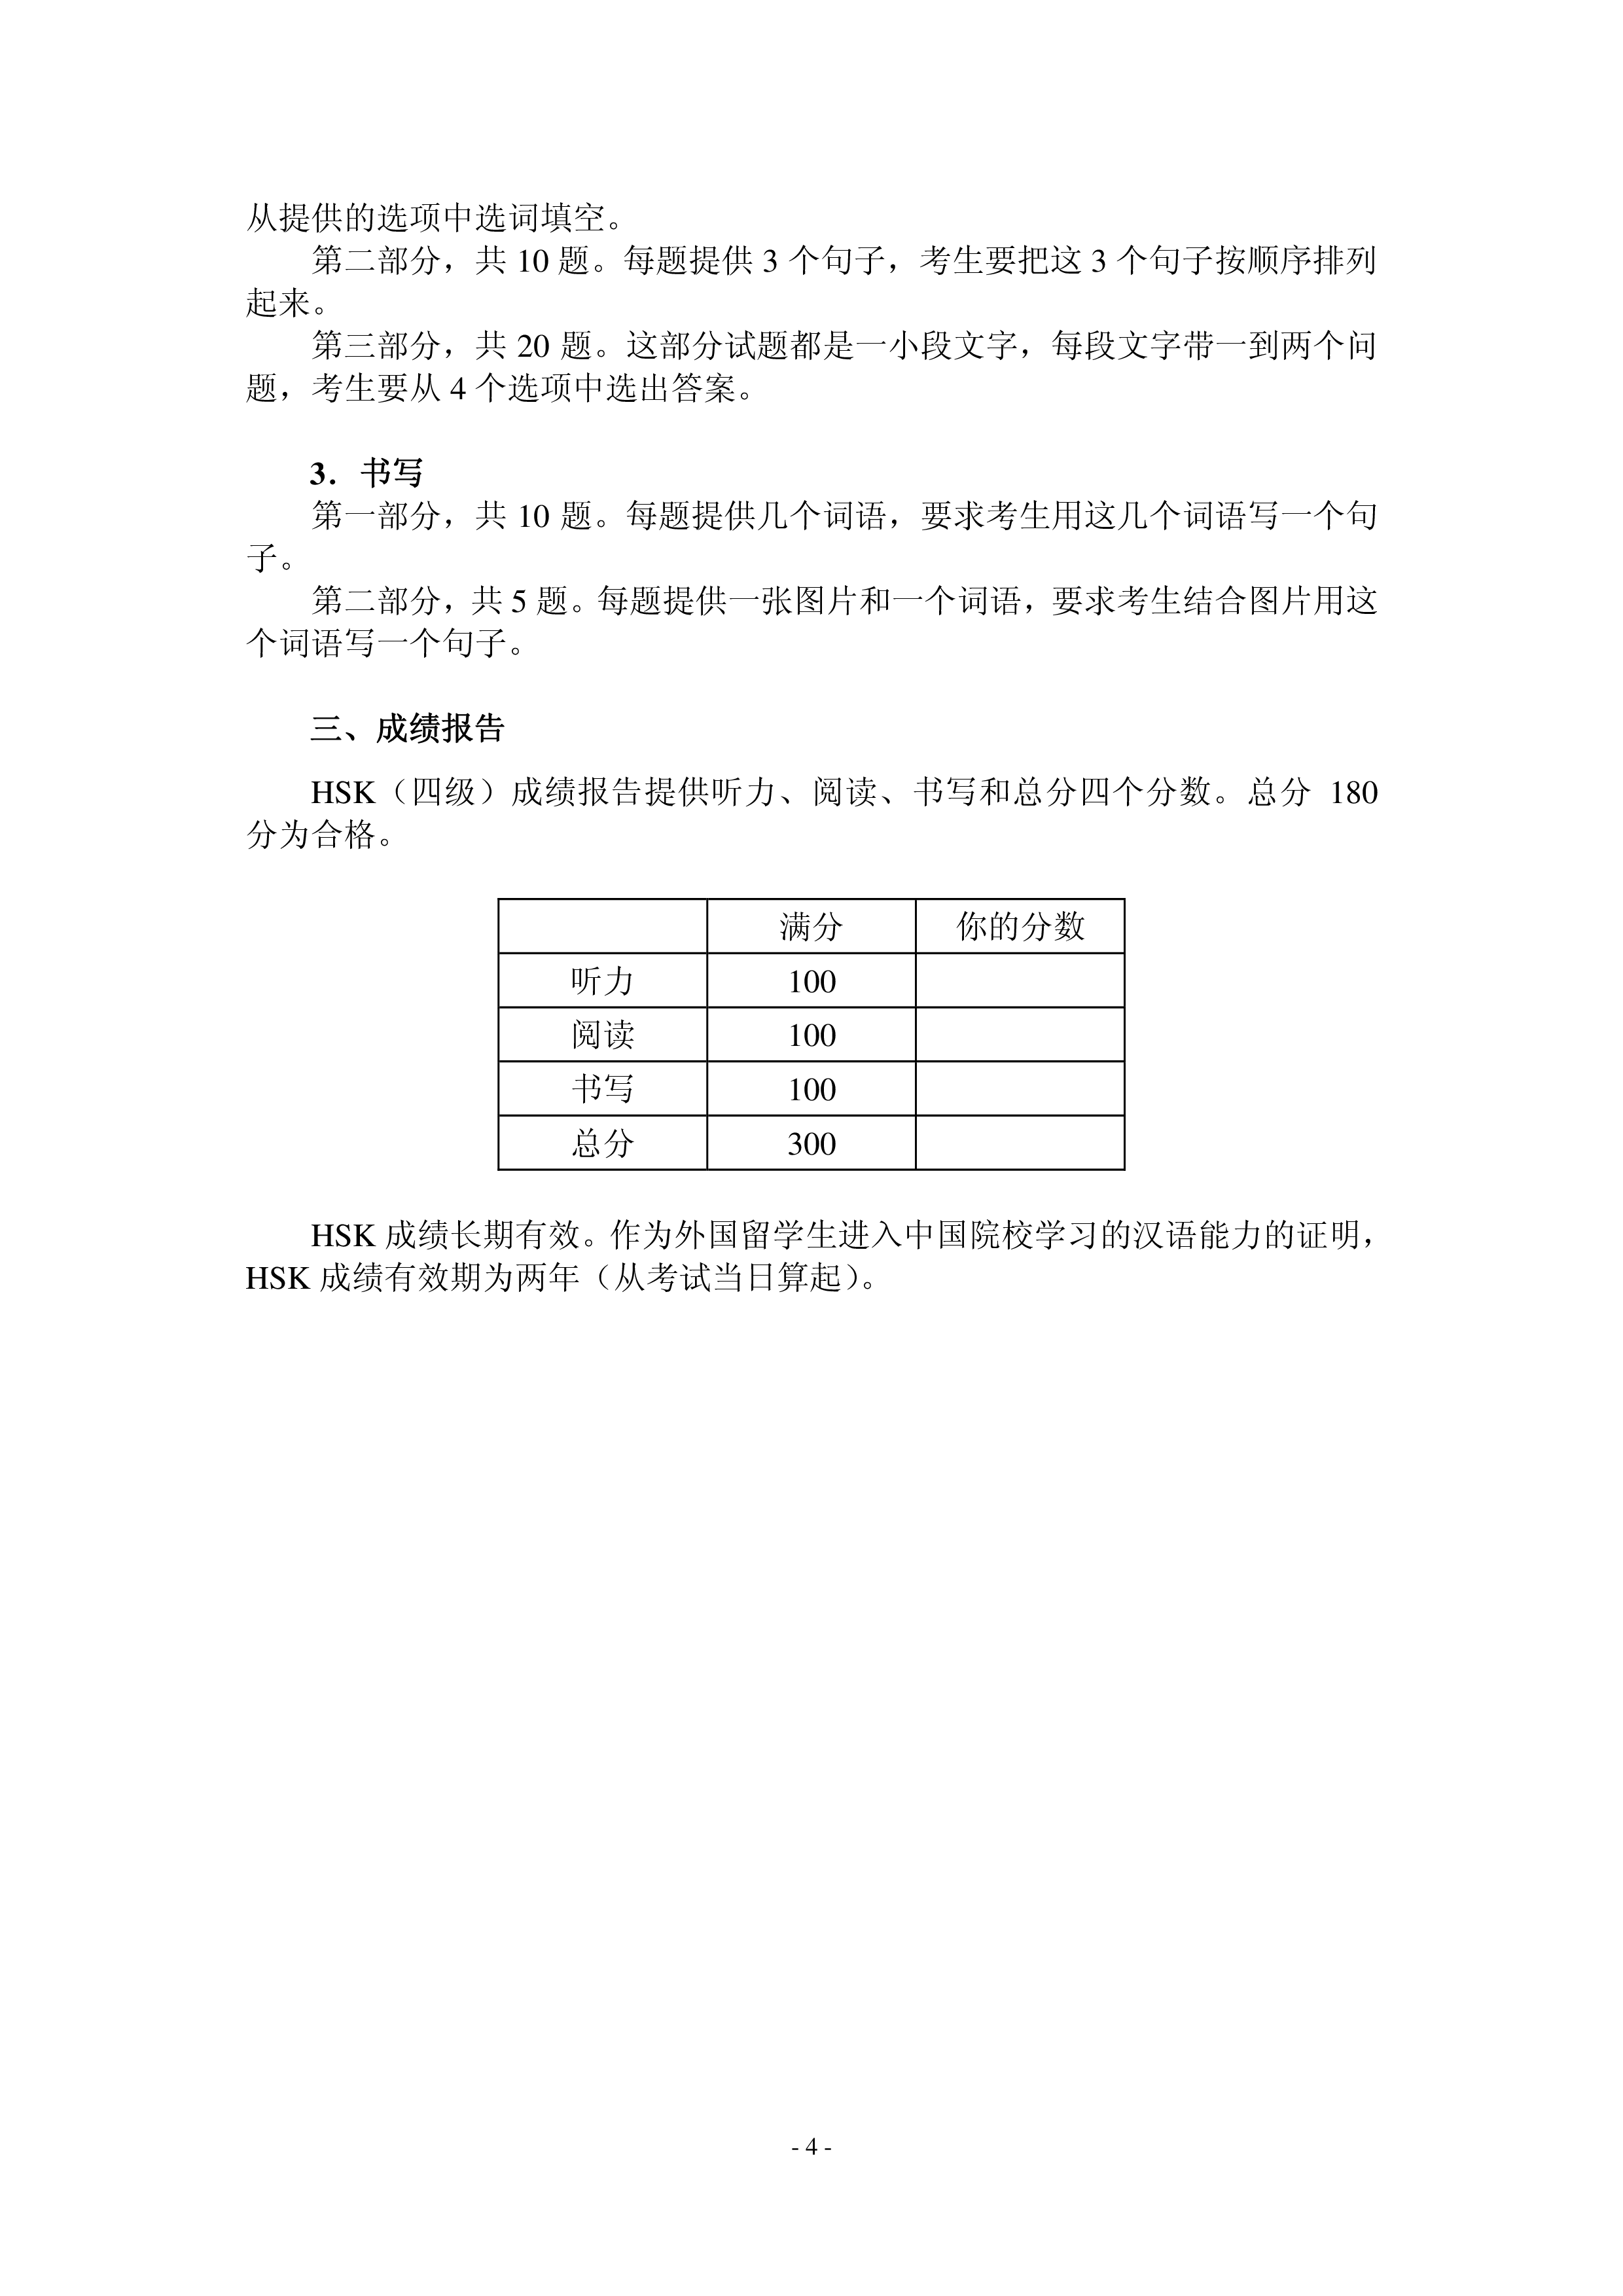 HSK4 Chinese Exam including Answers # HSK4 4-1 main image